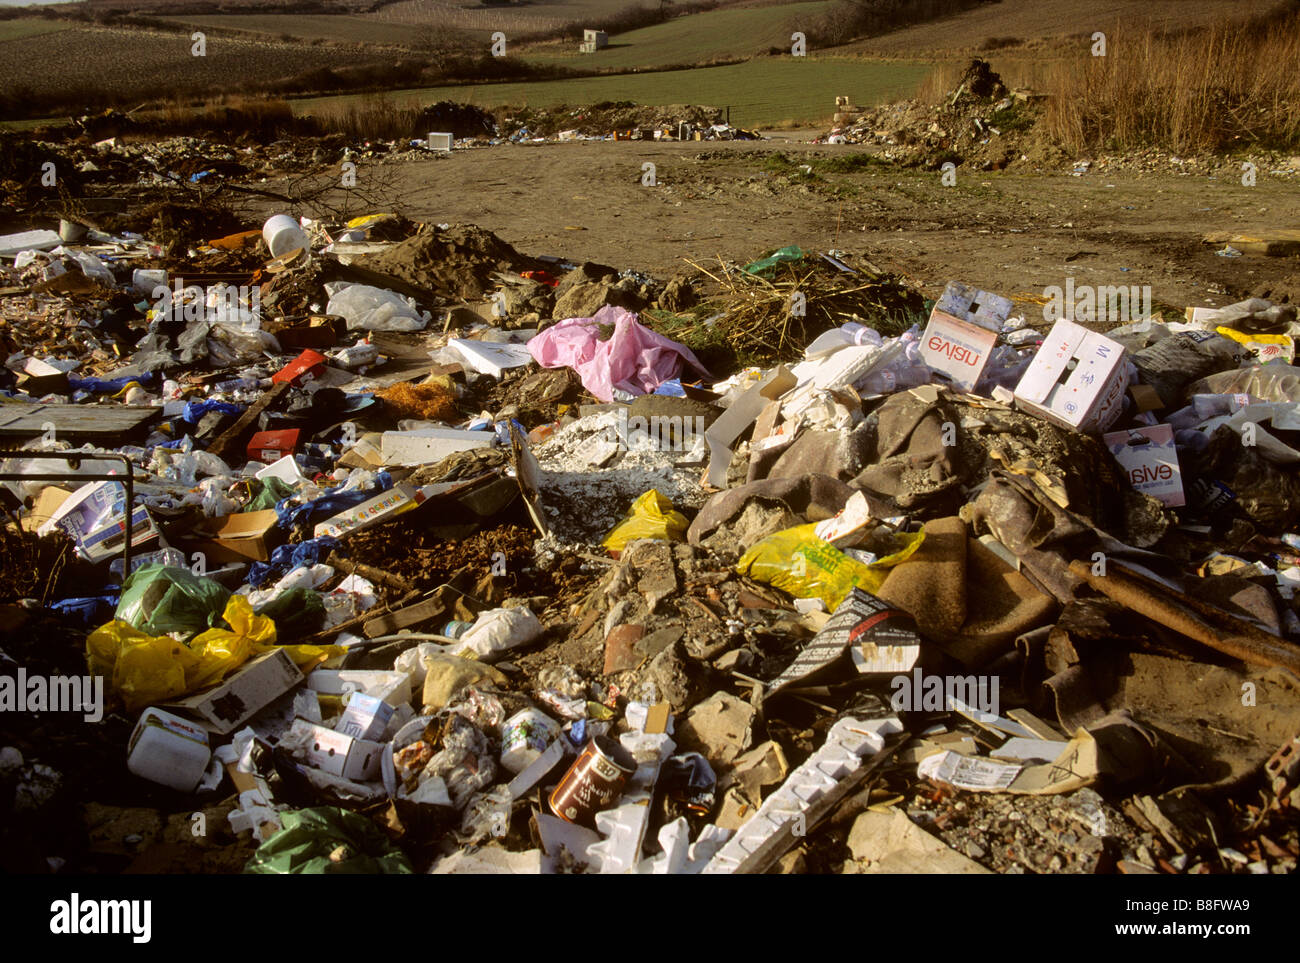 Rubbish tip / landfill waste site - Stock Image